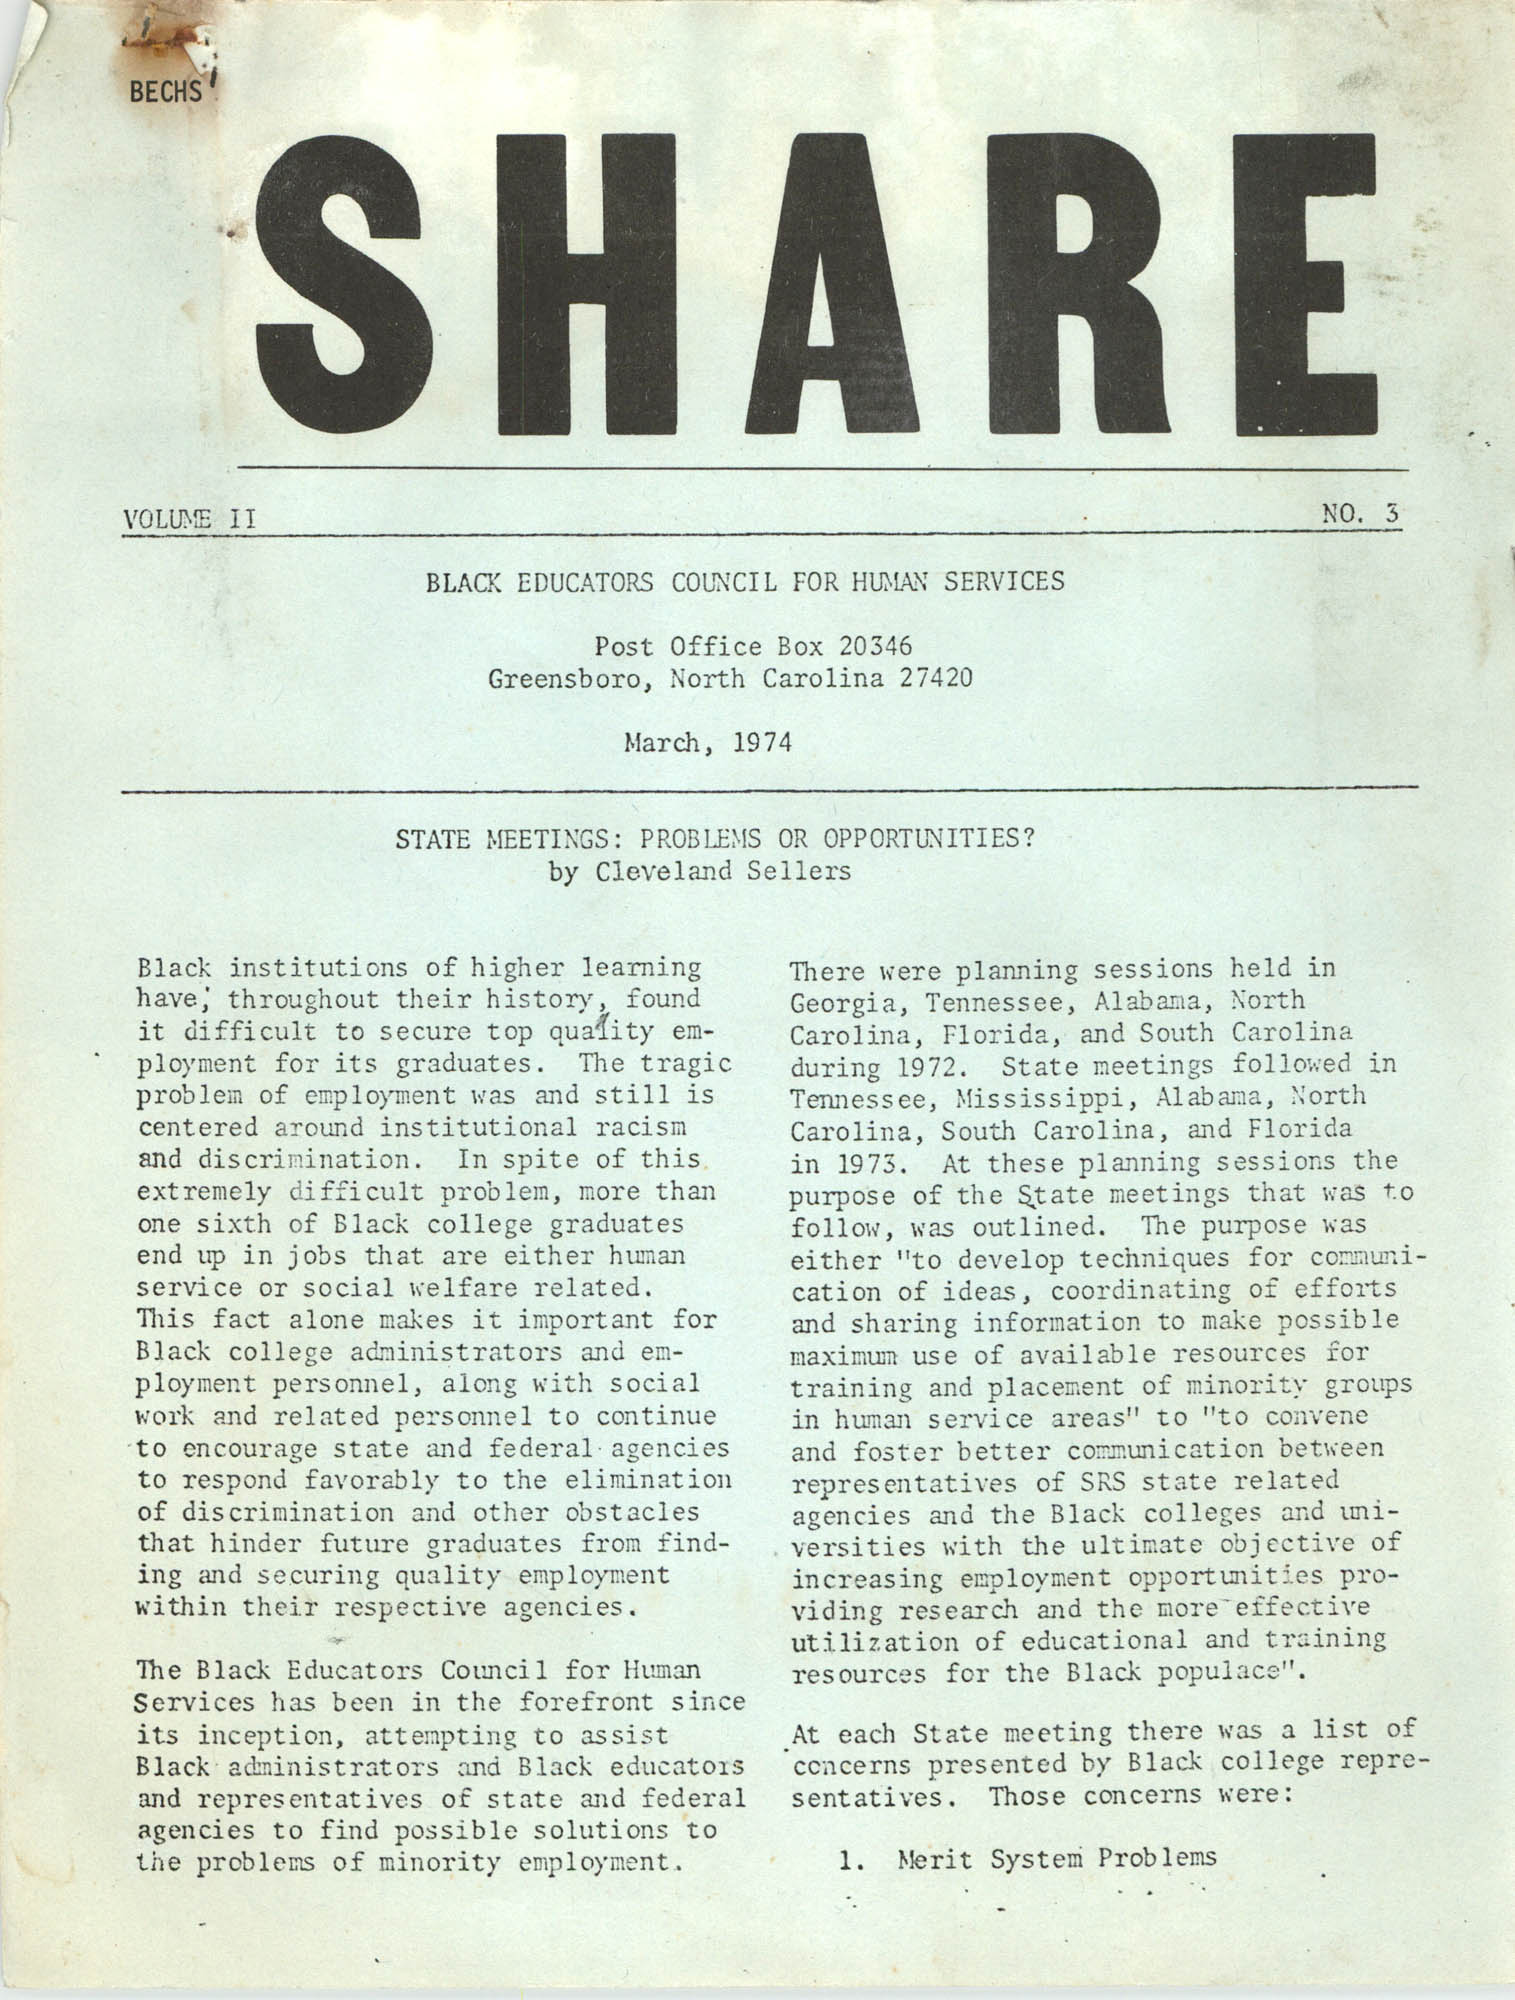 SHARE, Volume II, Number 3, March 1974